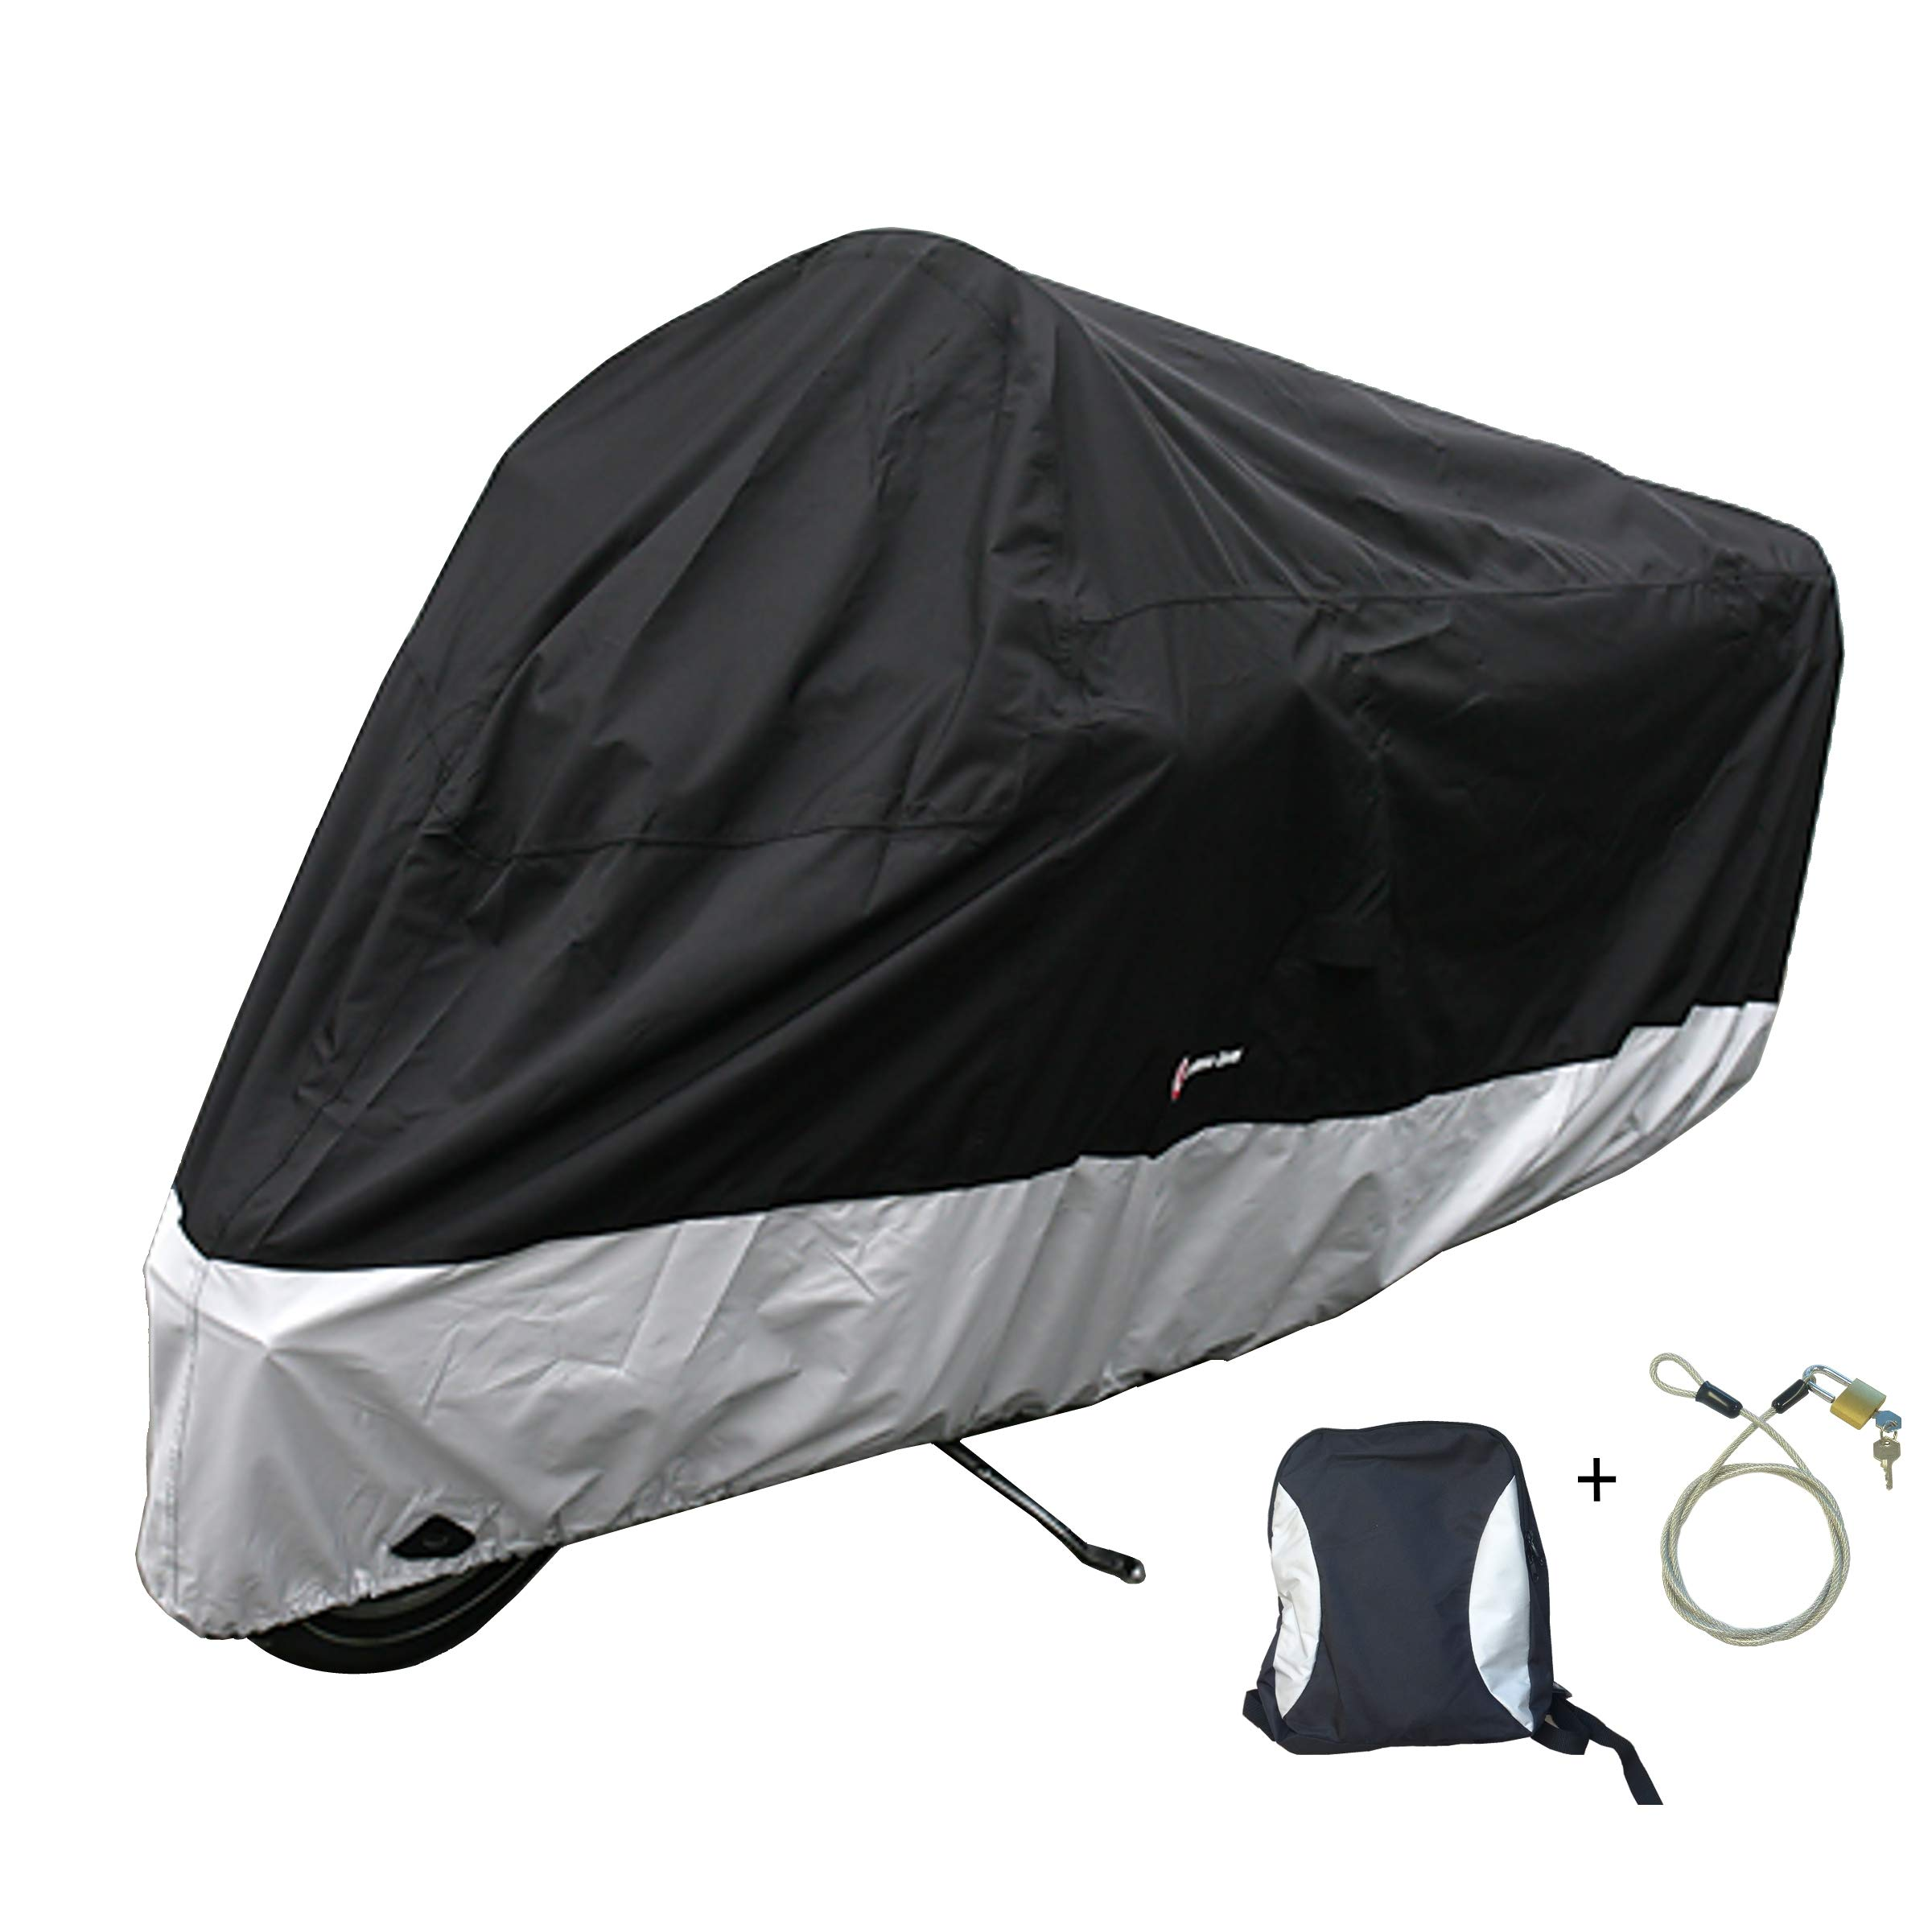 Formosa Covers Premium Heavy Duty Motorcycle Cover (XXL) with Cable & Lock. Fits up to 108'' Length Large Cruiser, Tourer, Chopper.